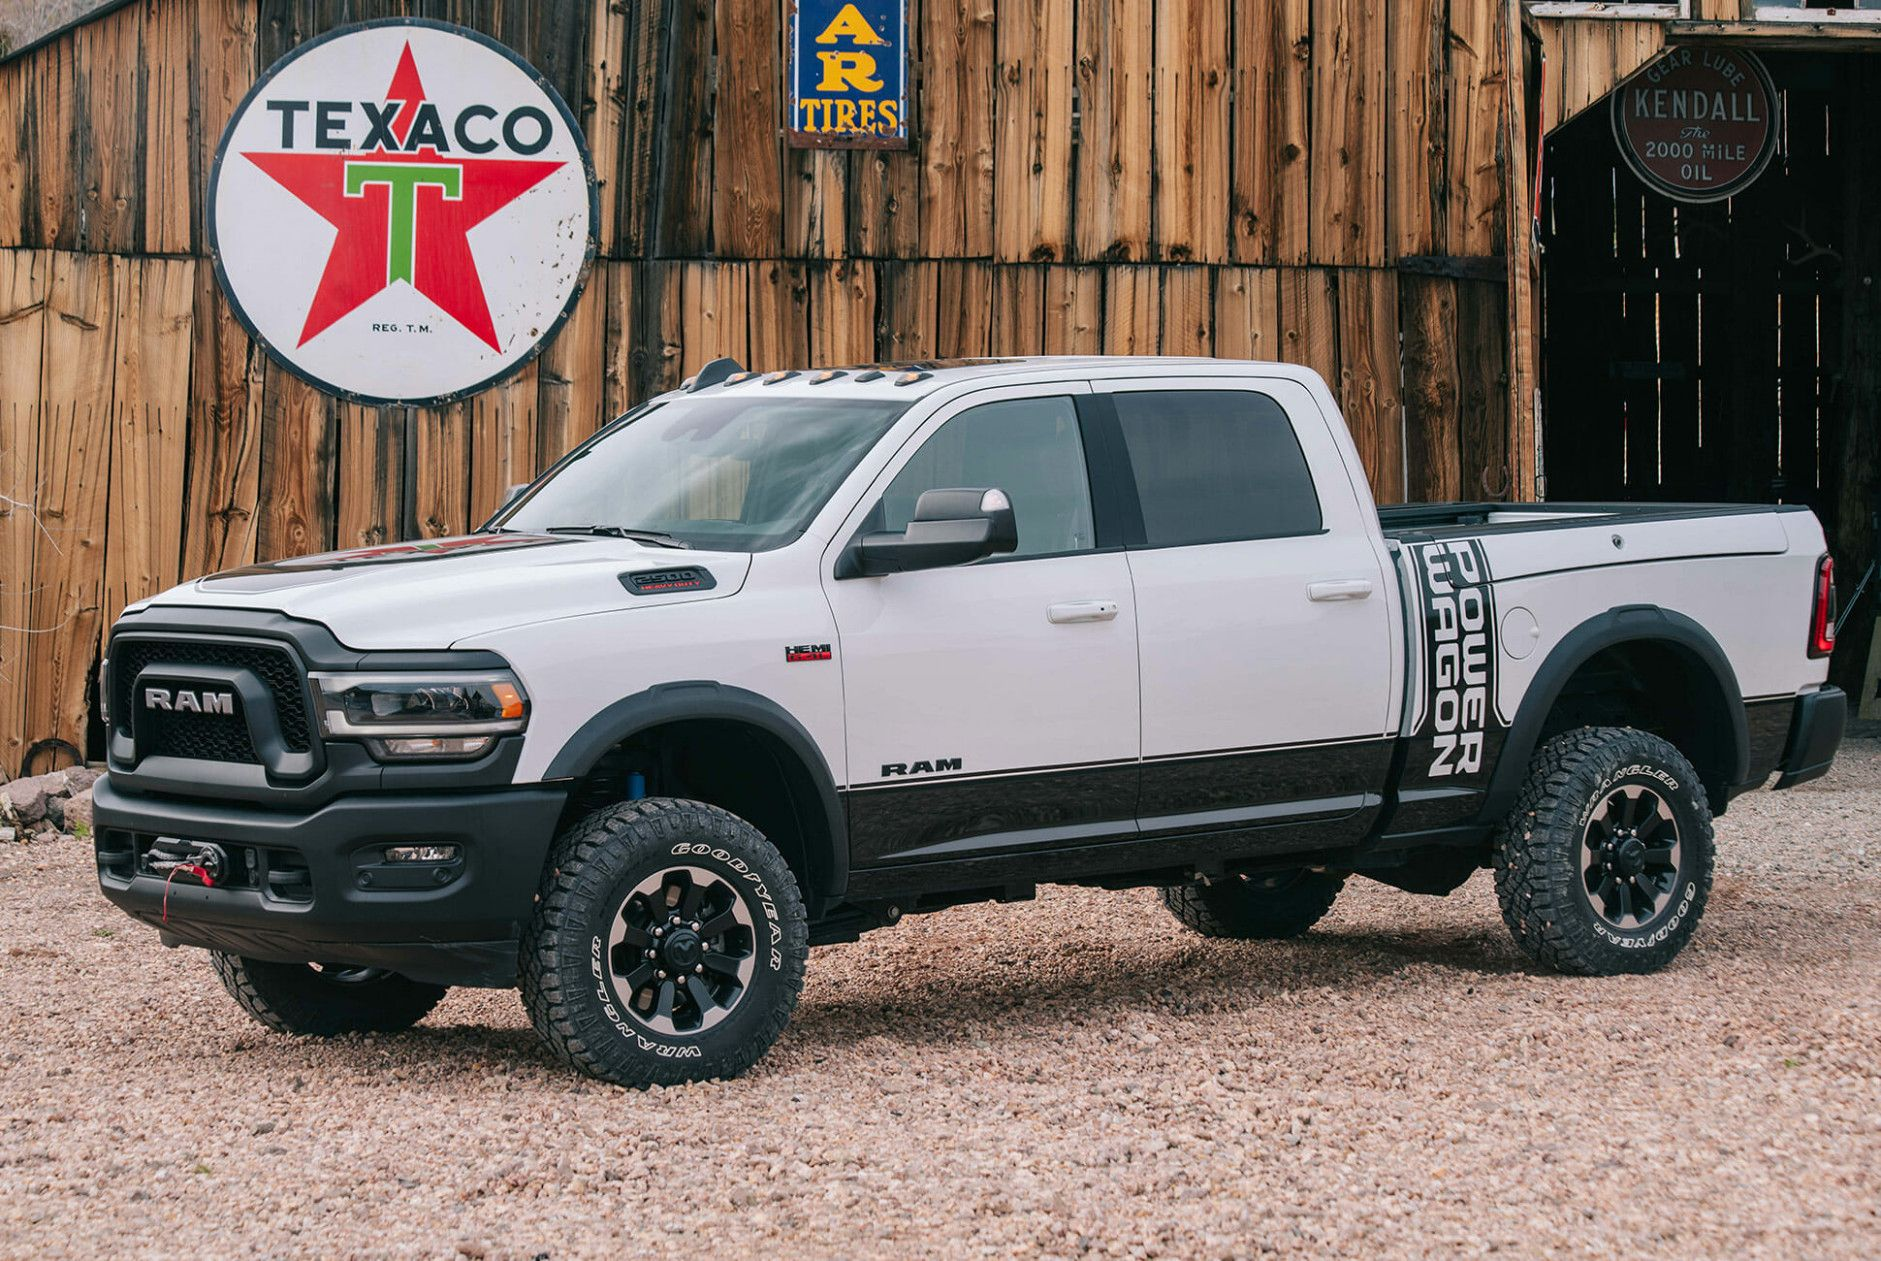 2020 Dodge Power Wagon Ratings In 2020 Power Wagon Ram Power Wagon Dodge Power Wagon